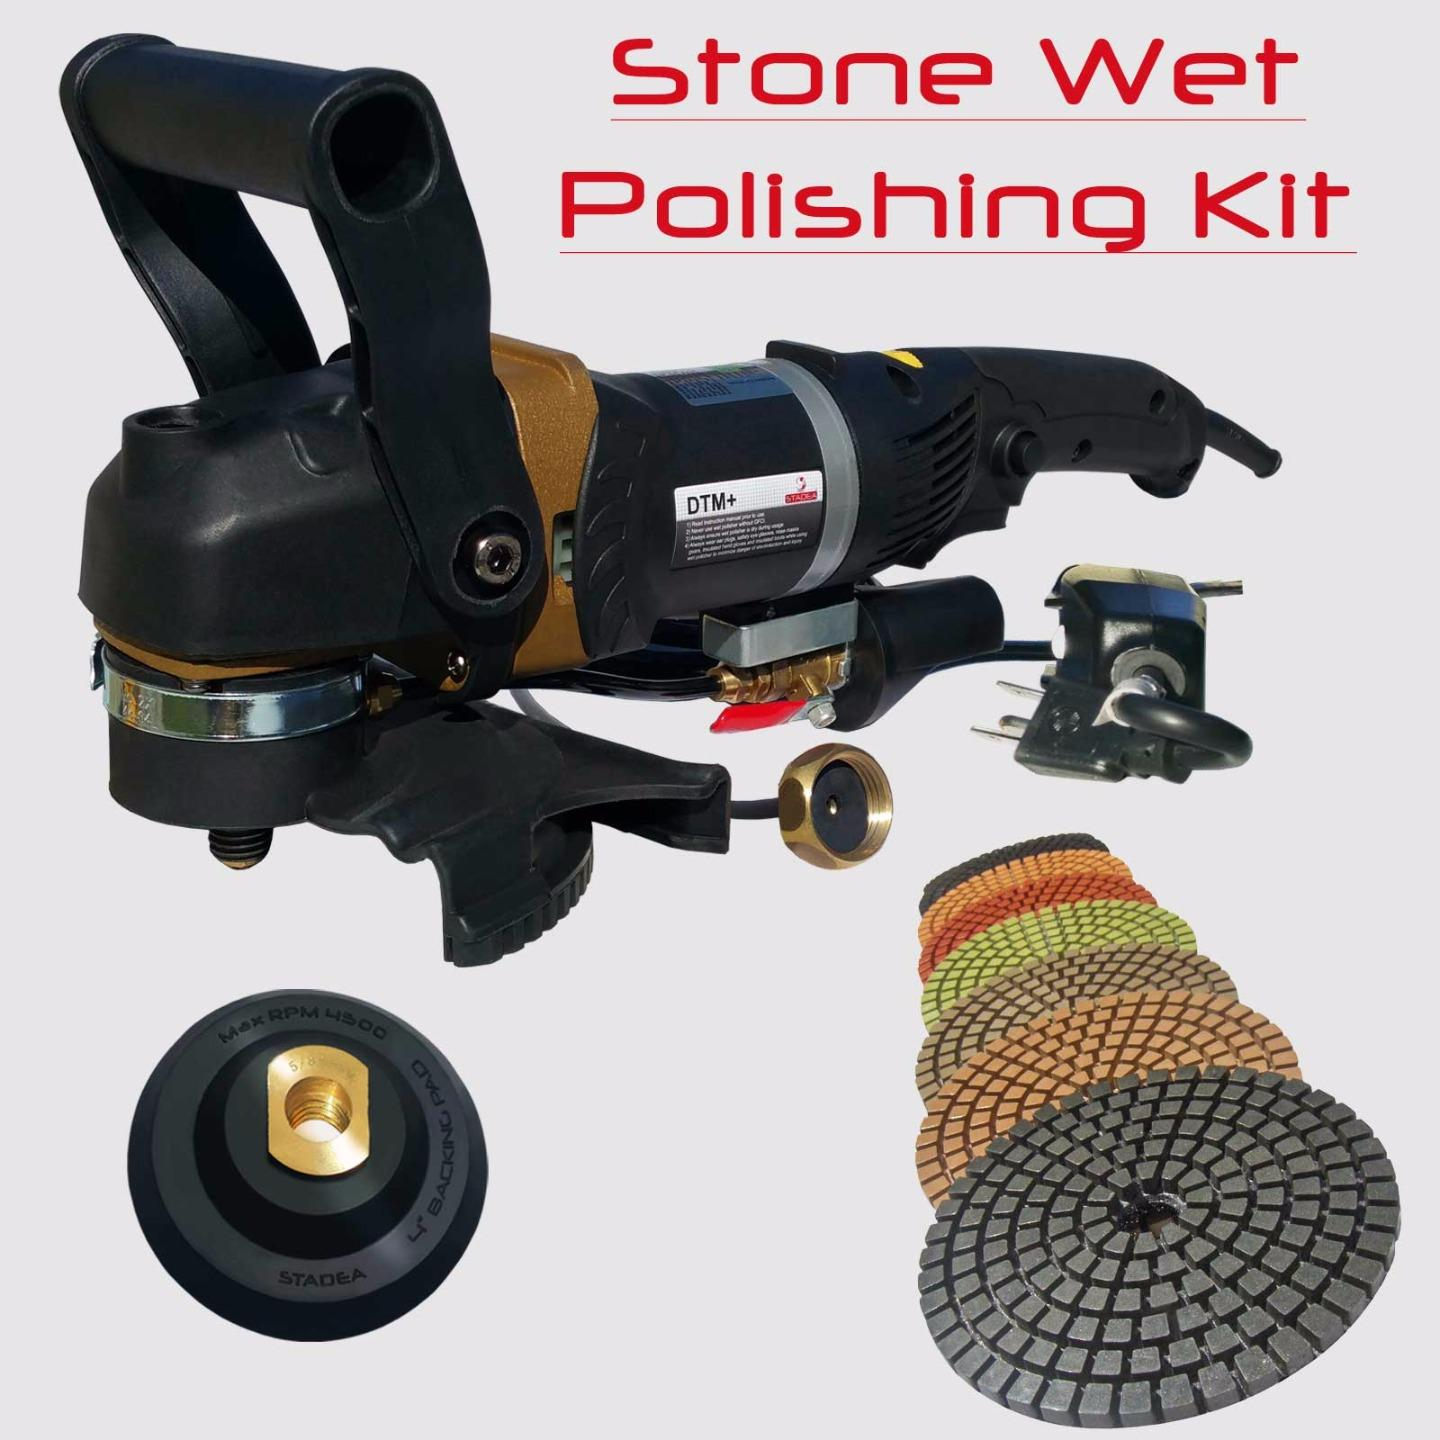 Concrete Countertop Polisher Stadea Concrete Countertop Grinder Polisher Wet Kit For